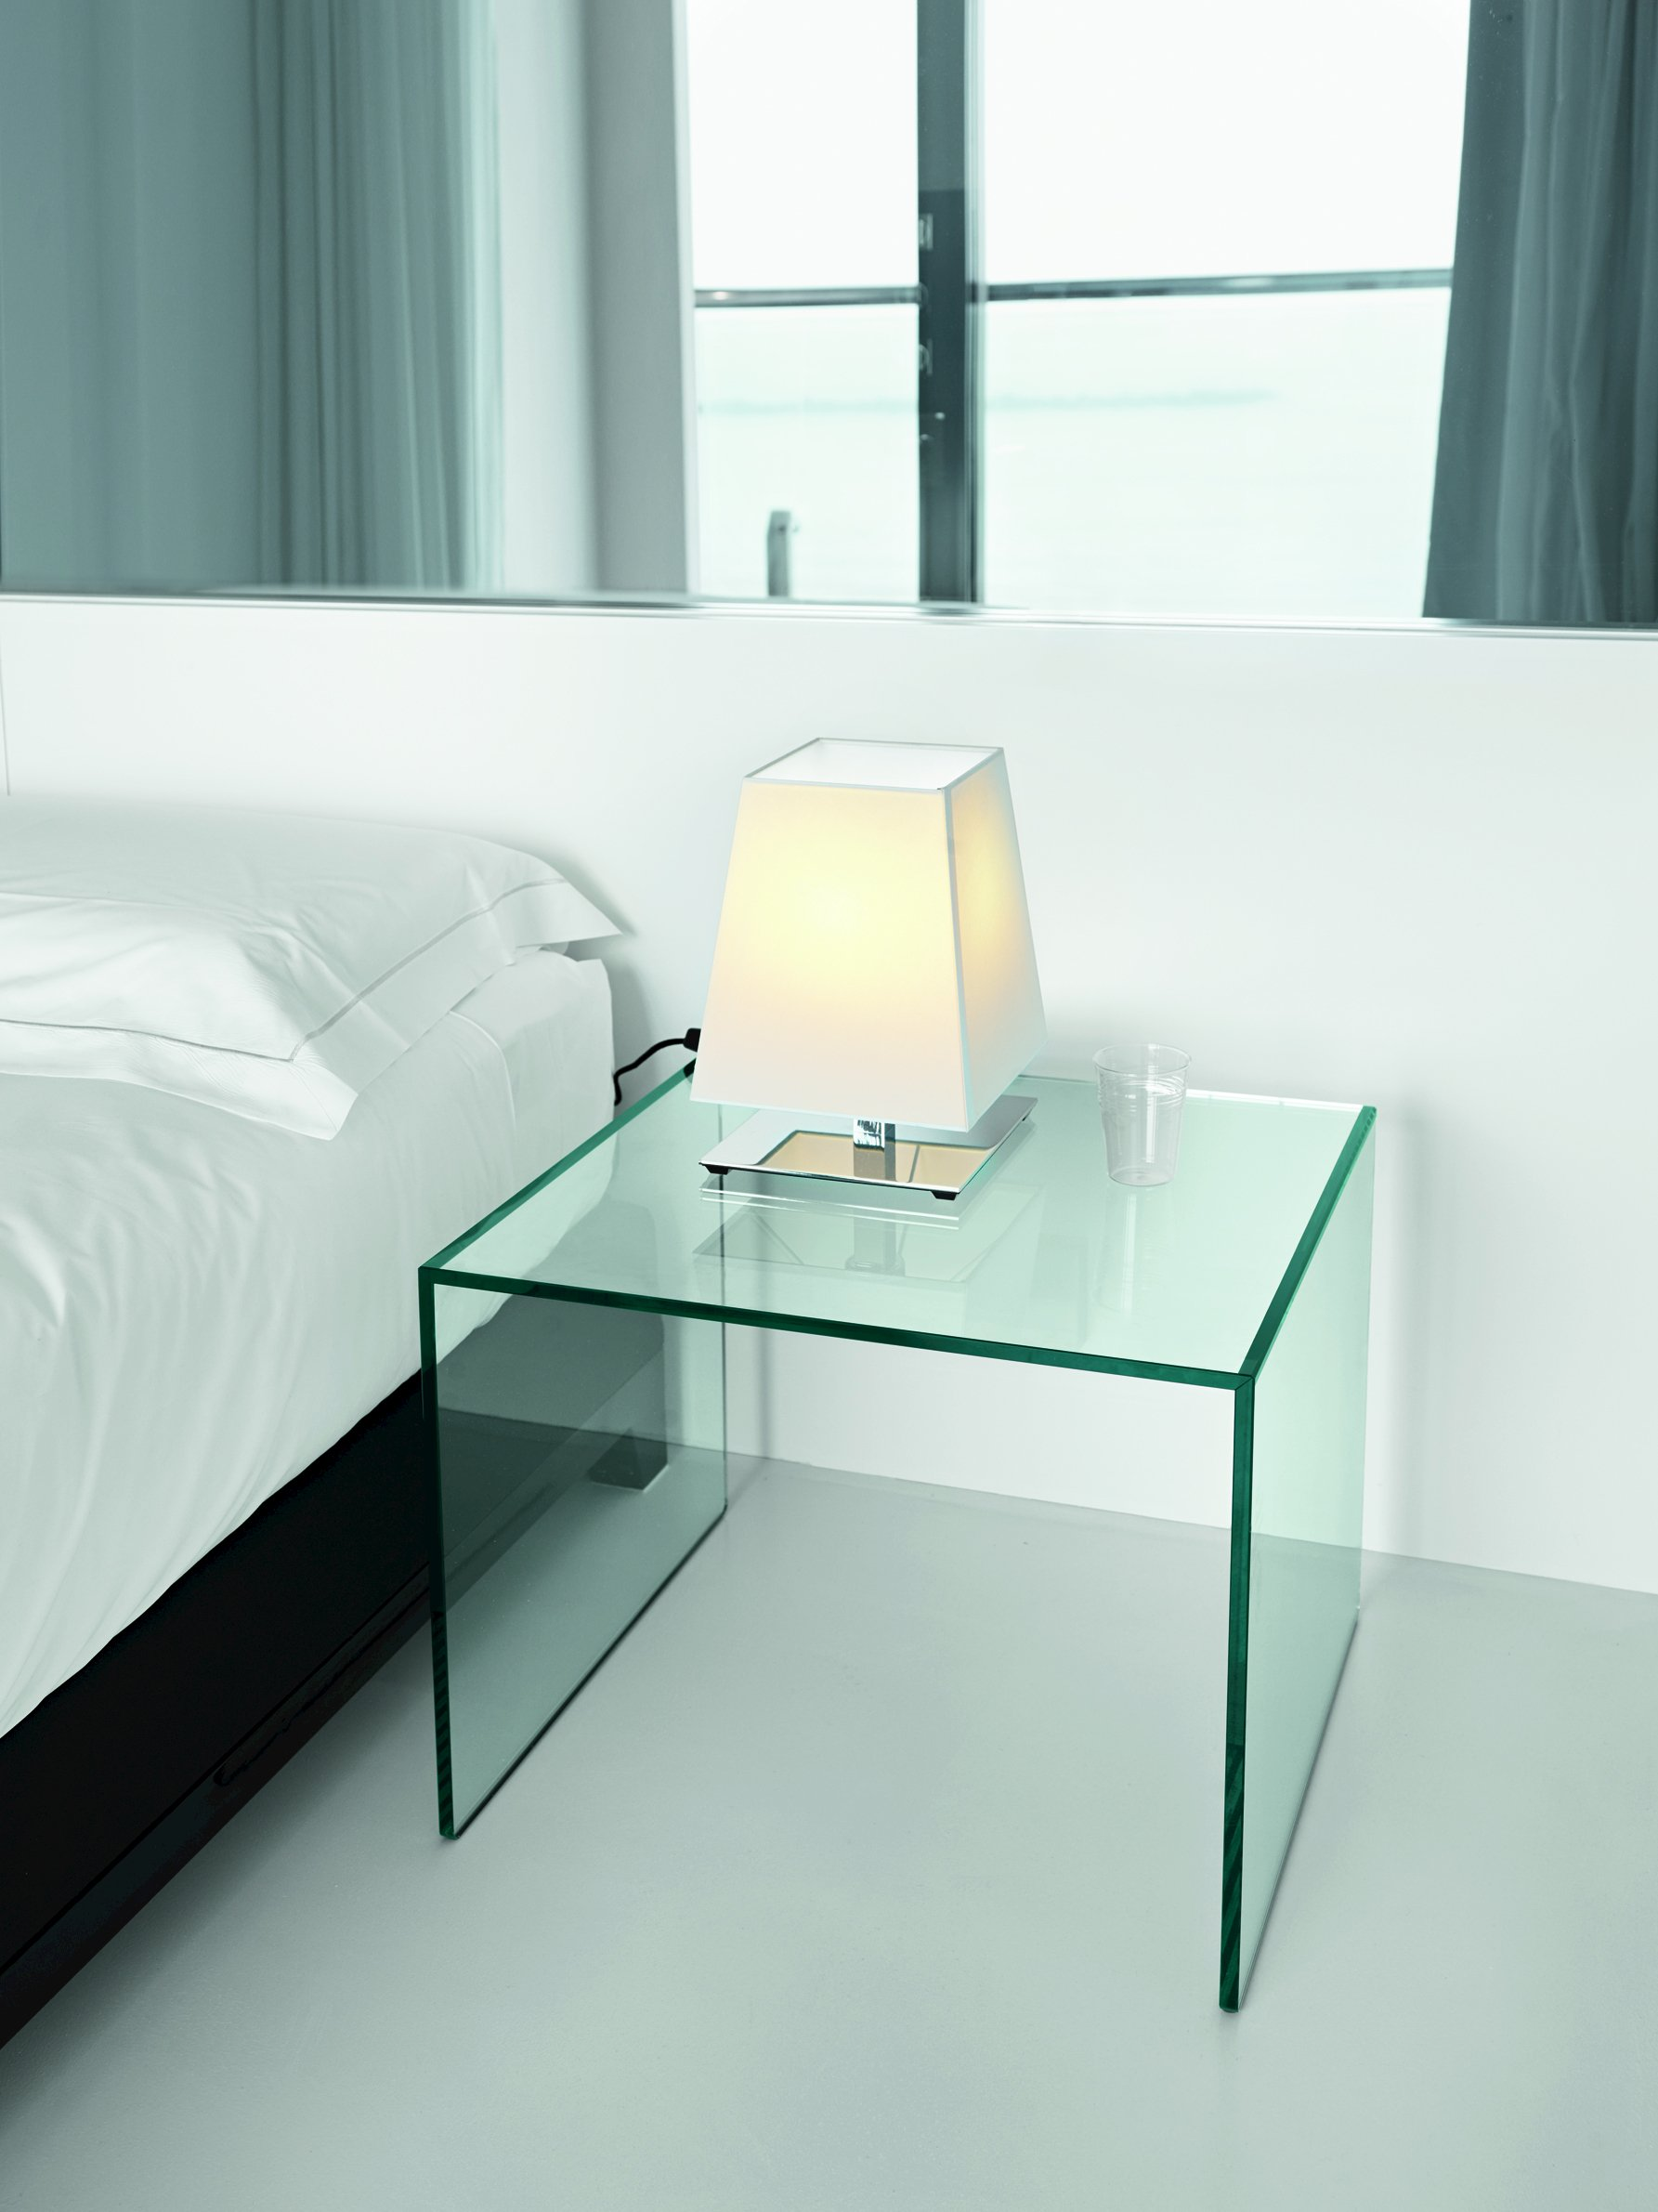 table d 39 appoint en verre trio by t d tonelli design. Black Bedroom Furniture Sets. Home Design Ideas